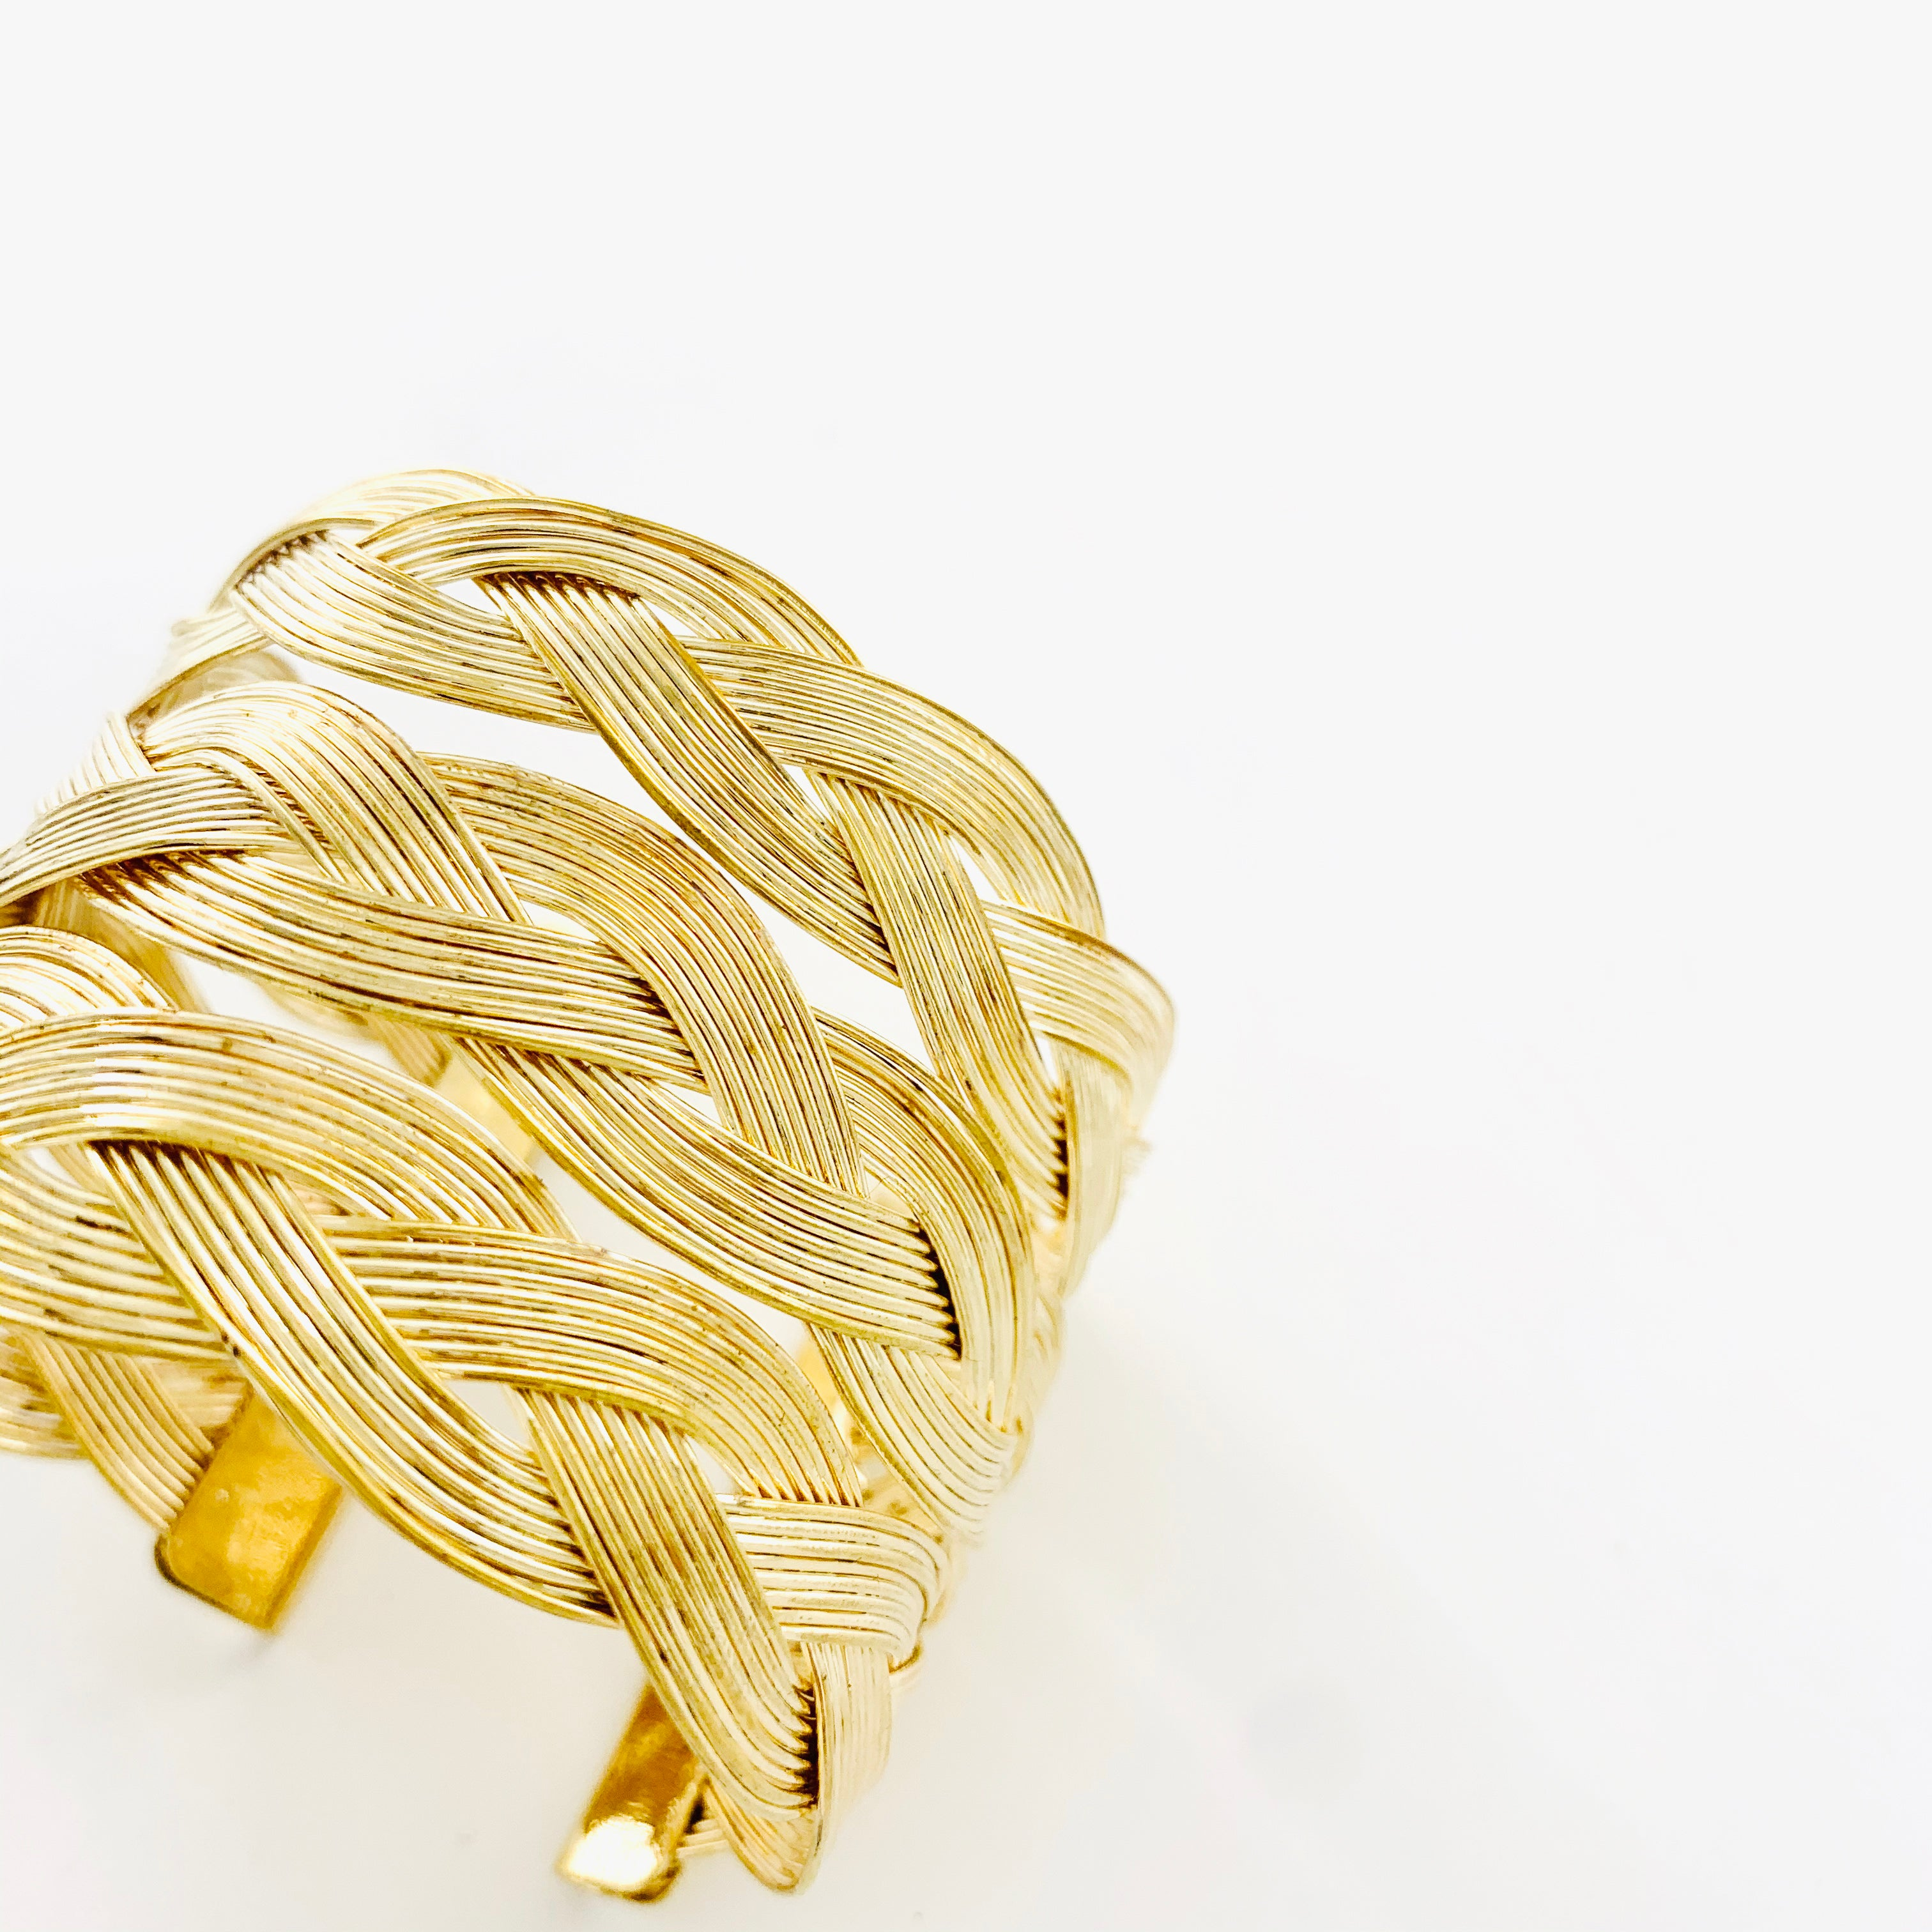 Gold Bangles with wavy weaved pattern